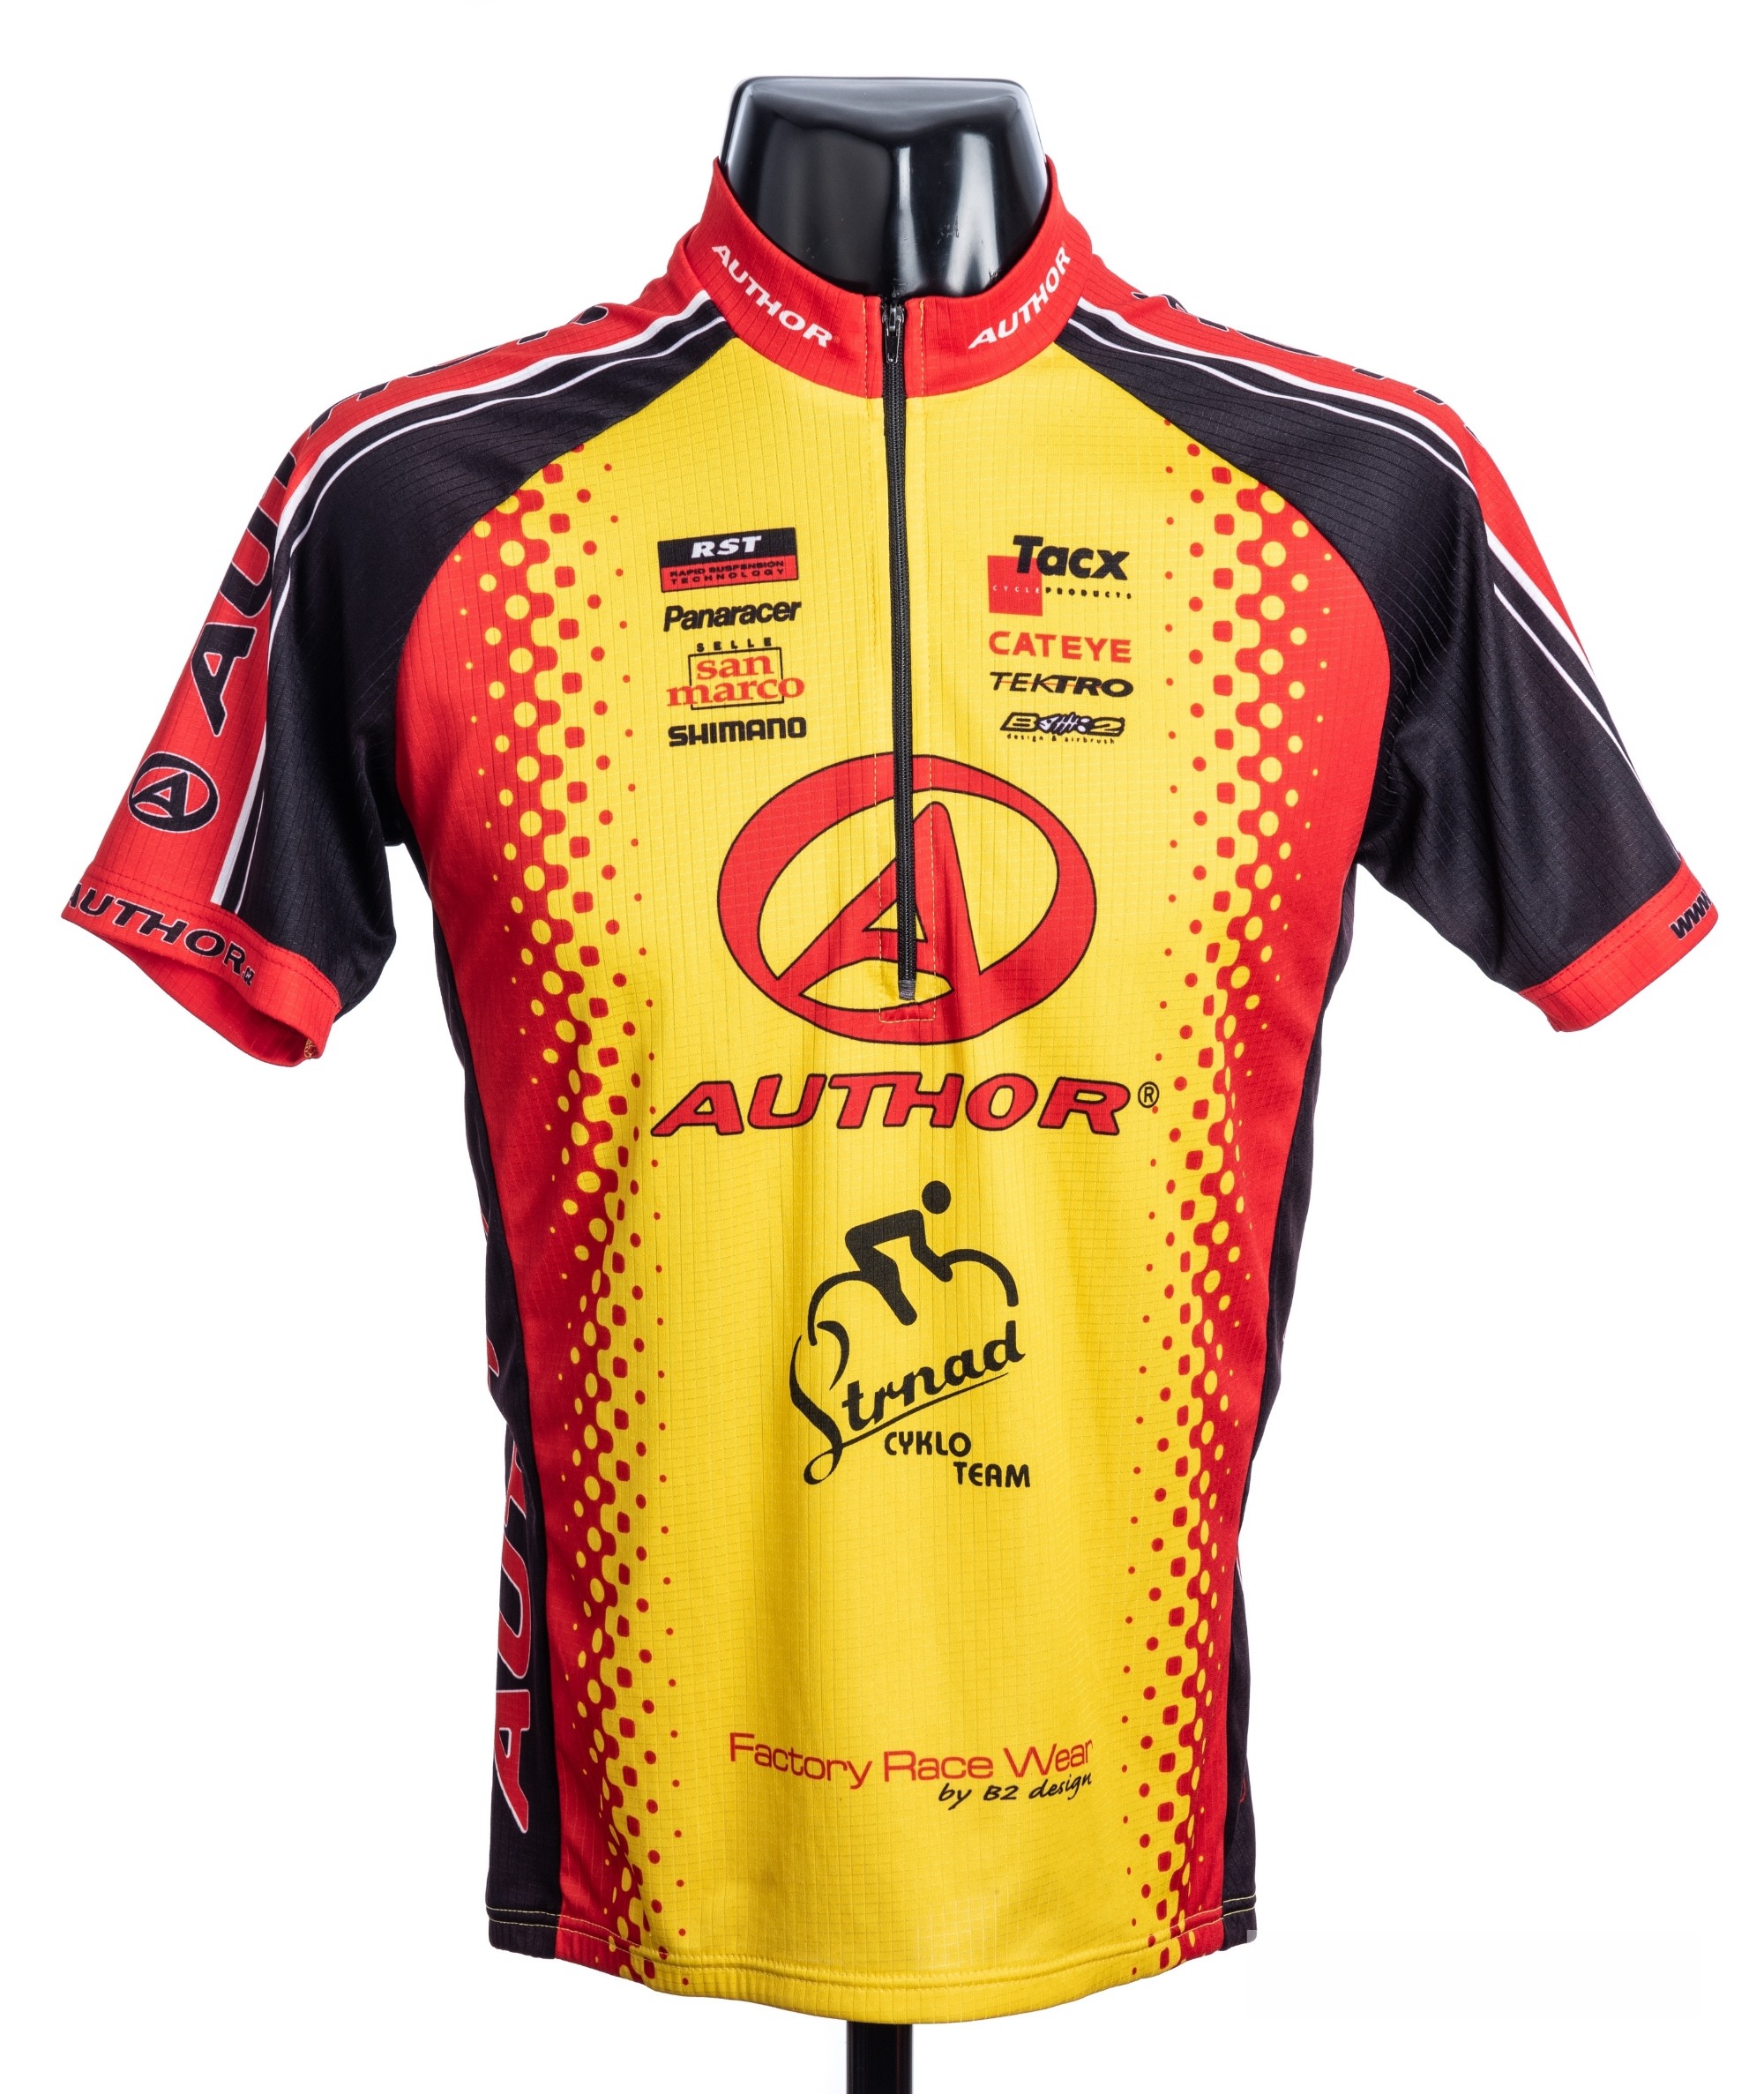 2008 yellow, red and black Czech Elkov Kasper Author Cycles Cycling race jersey, scarce, polyester - Image 3 of 4